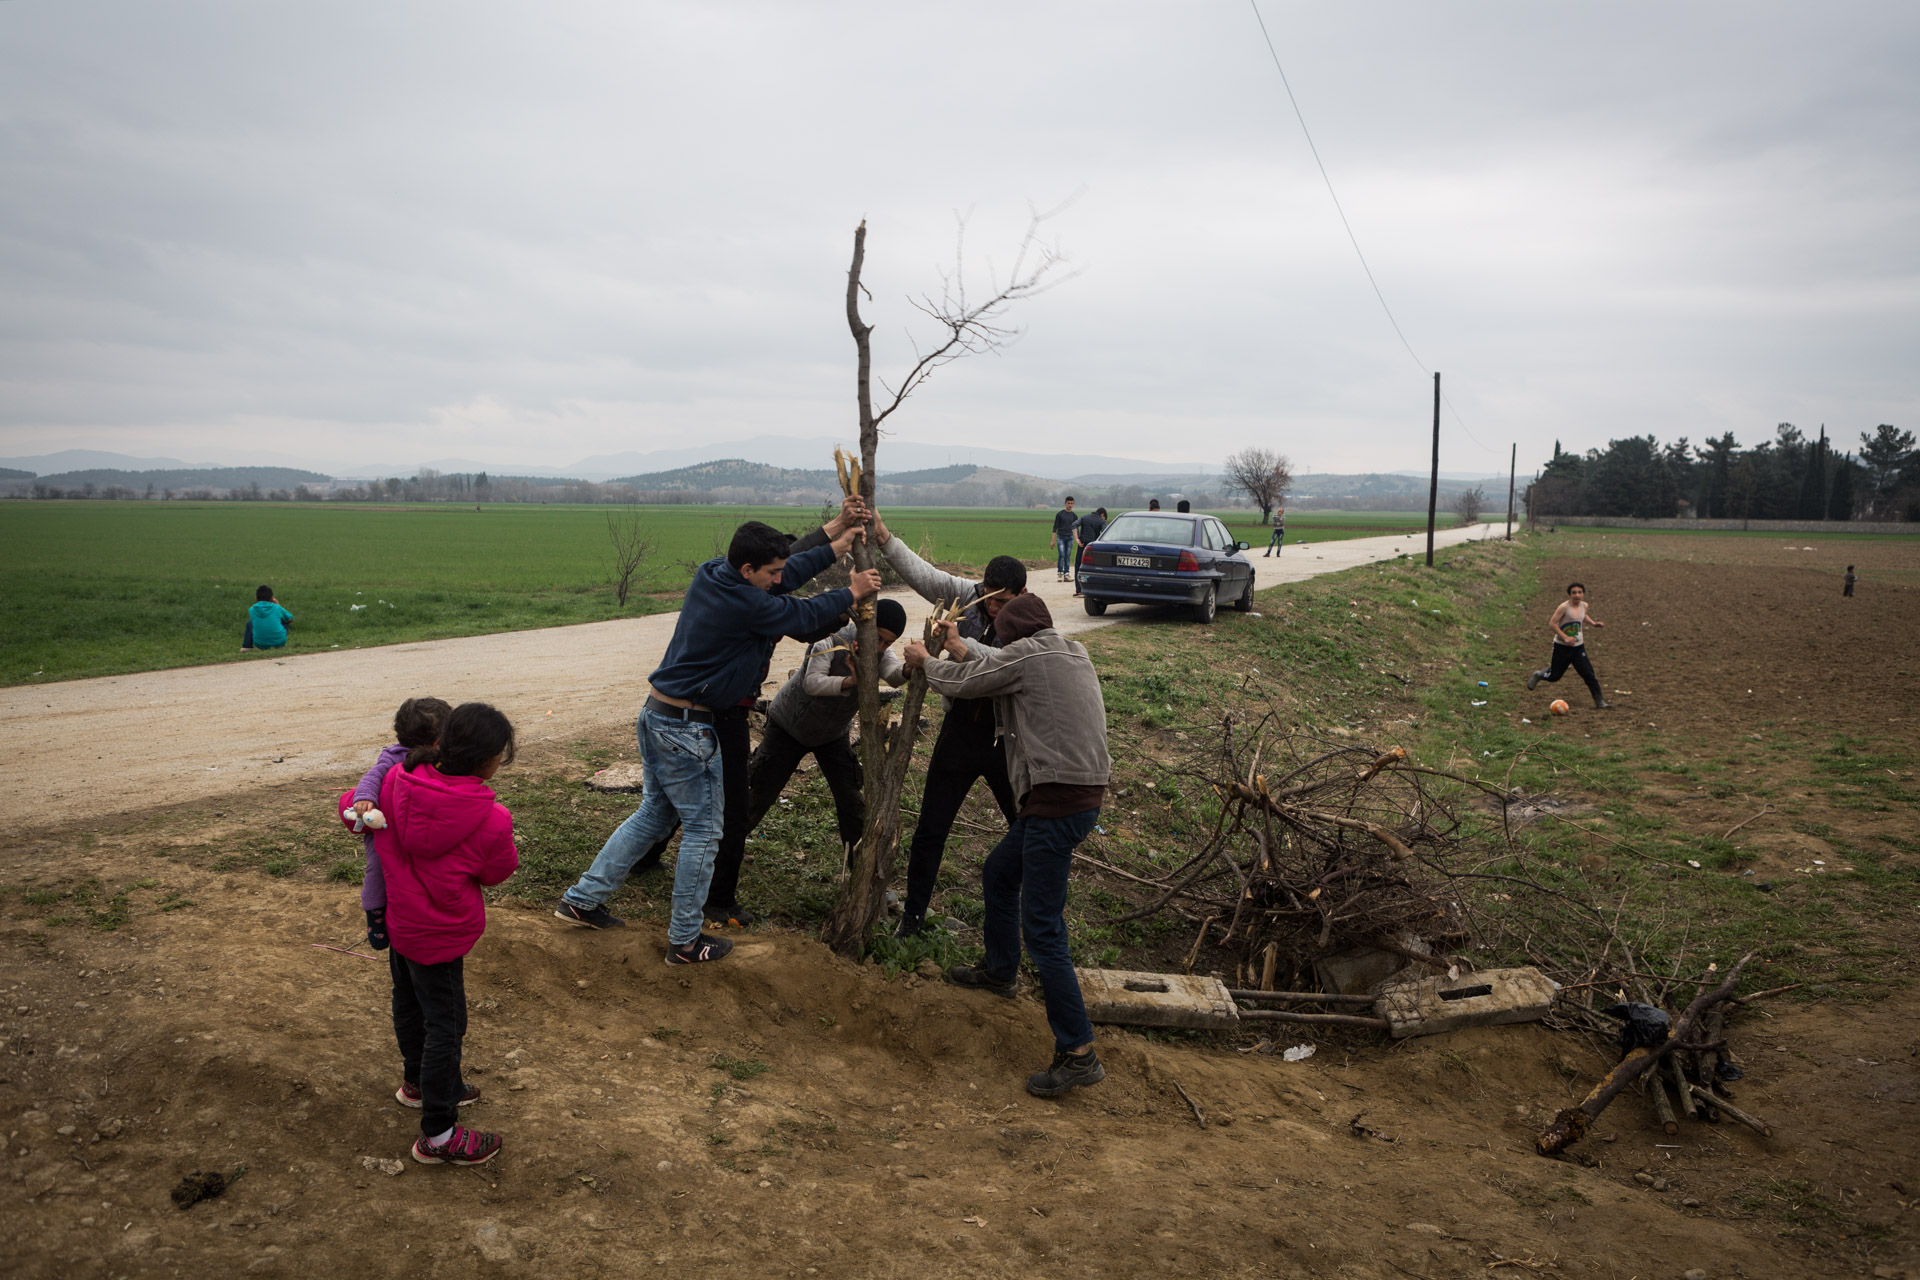 Unable to find enough fire wood to burn in the evening, Basem, Abd al-Rahman, Mohammad and Ahmad start to uproot a small tree nearby.